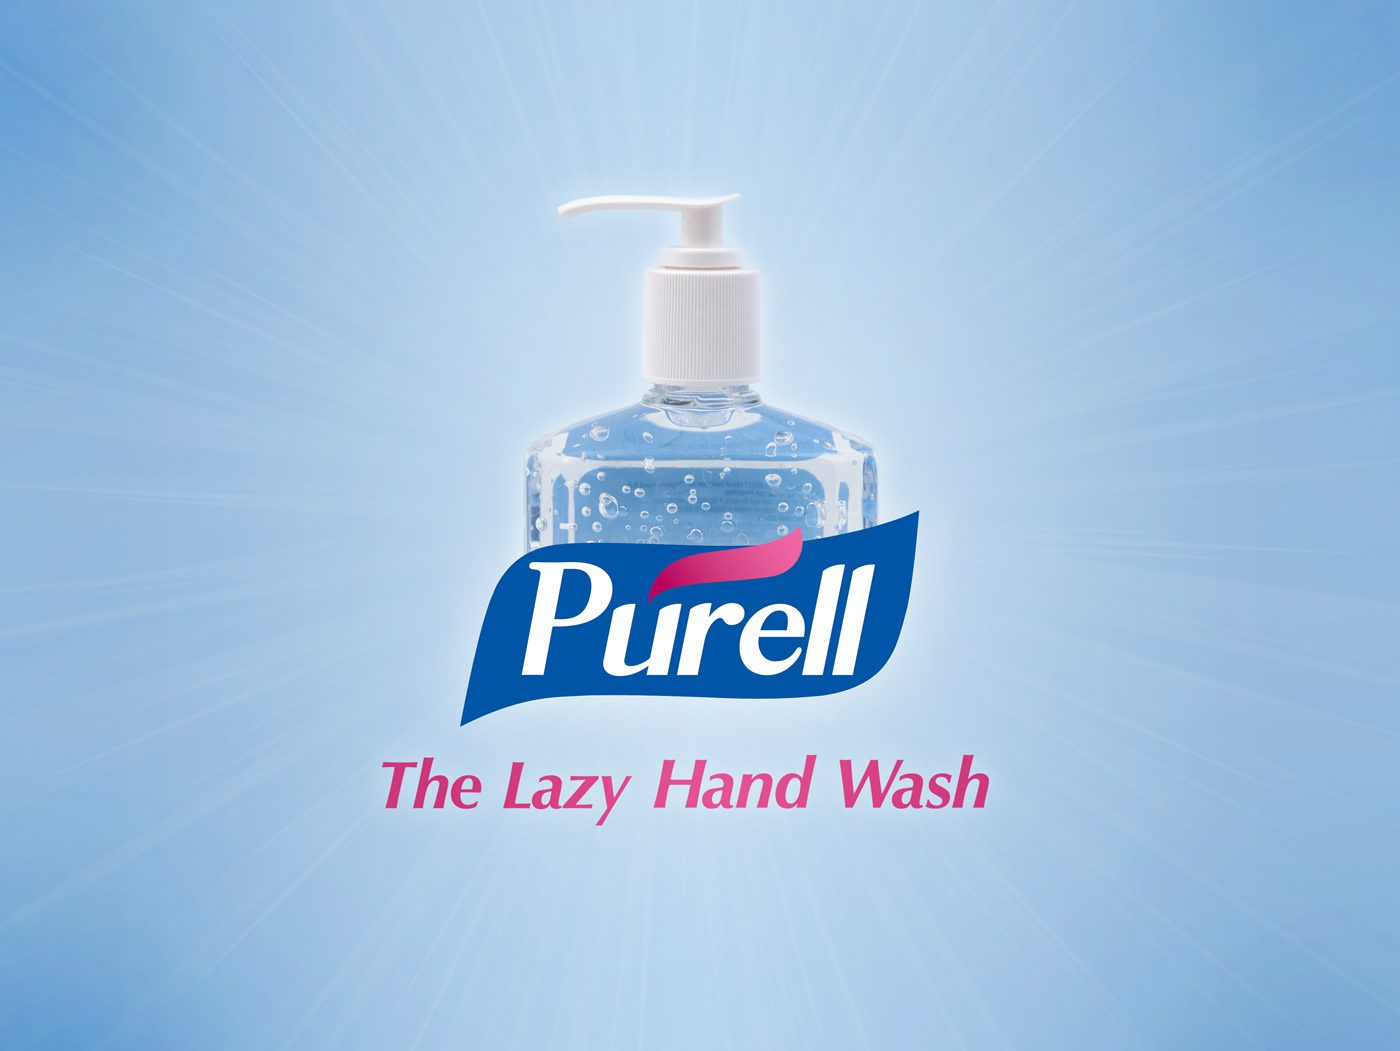 Purell - The Lazy Hand Wash